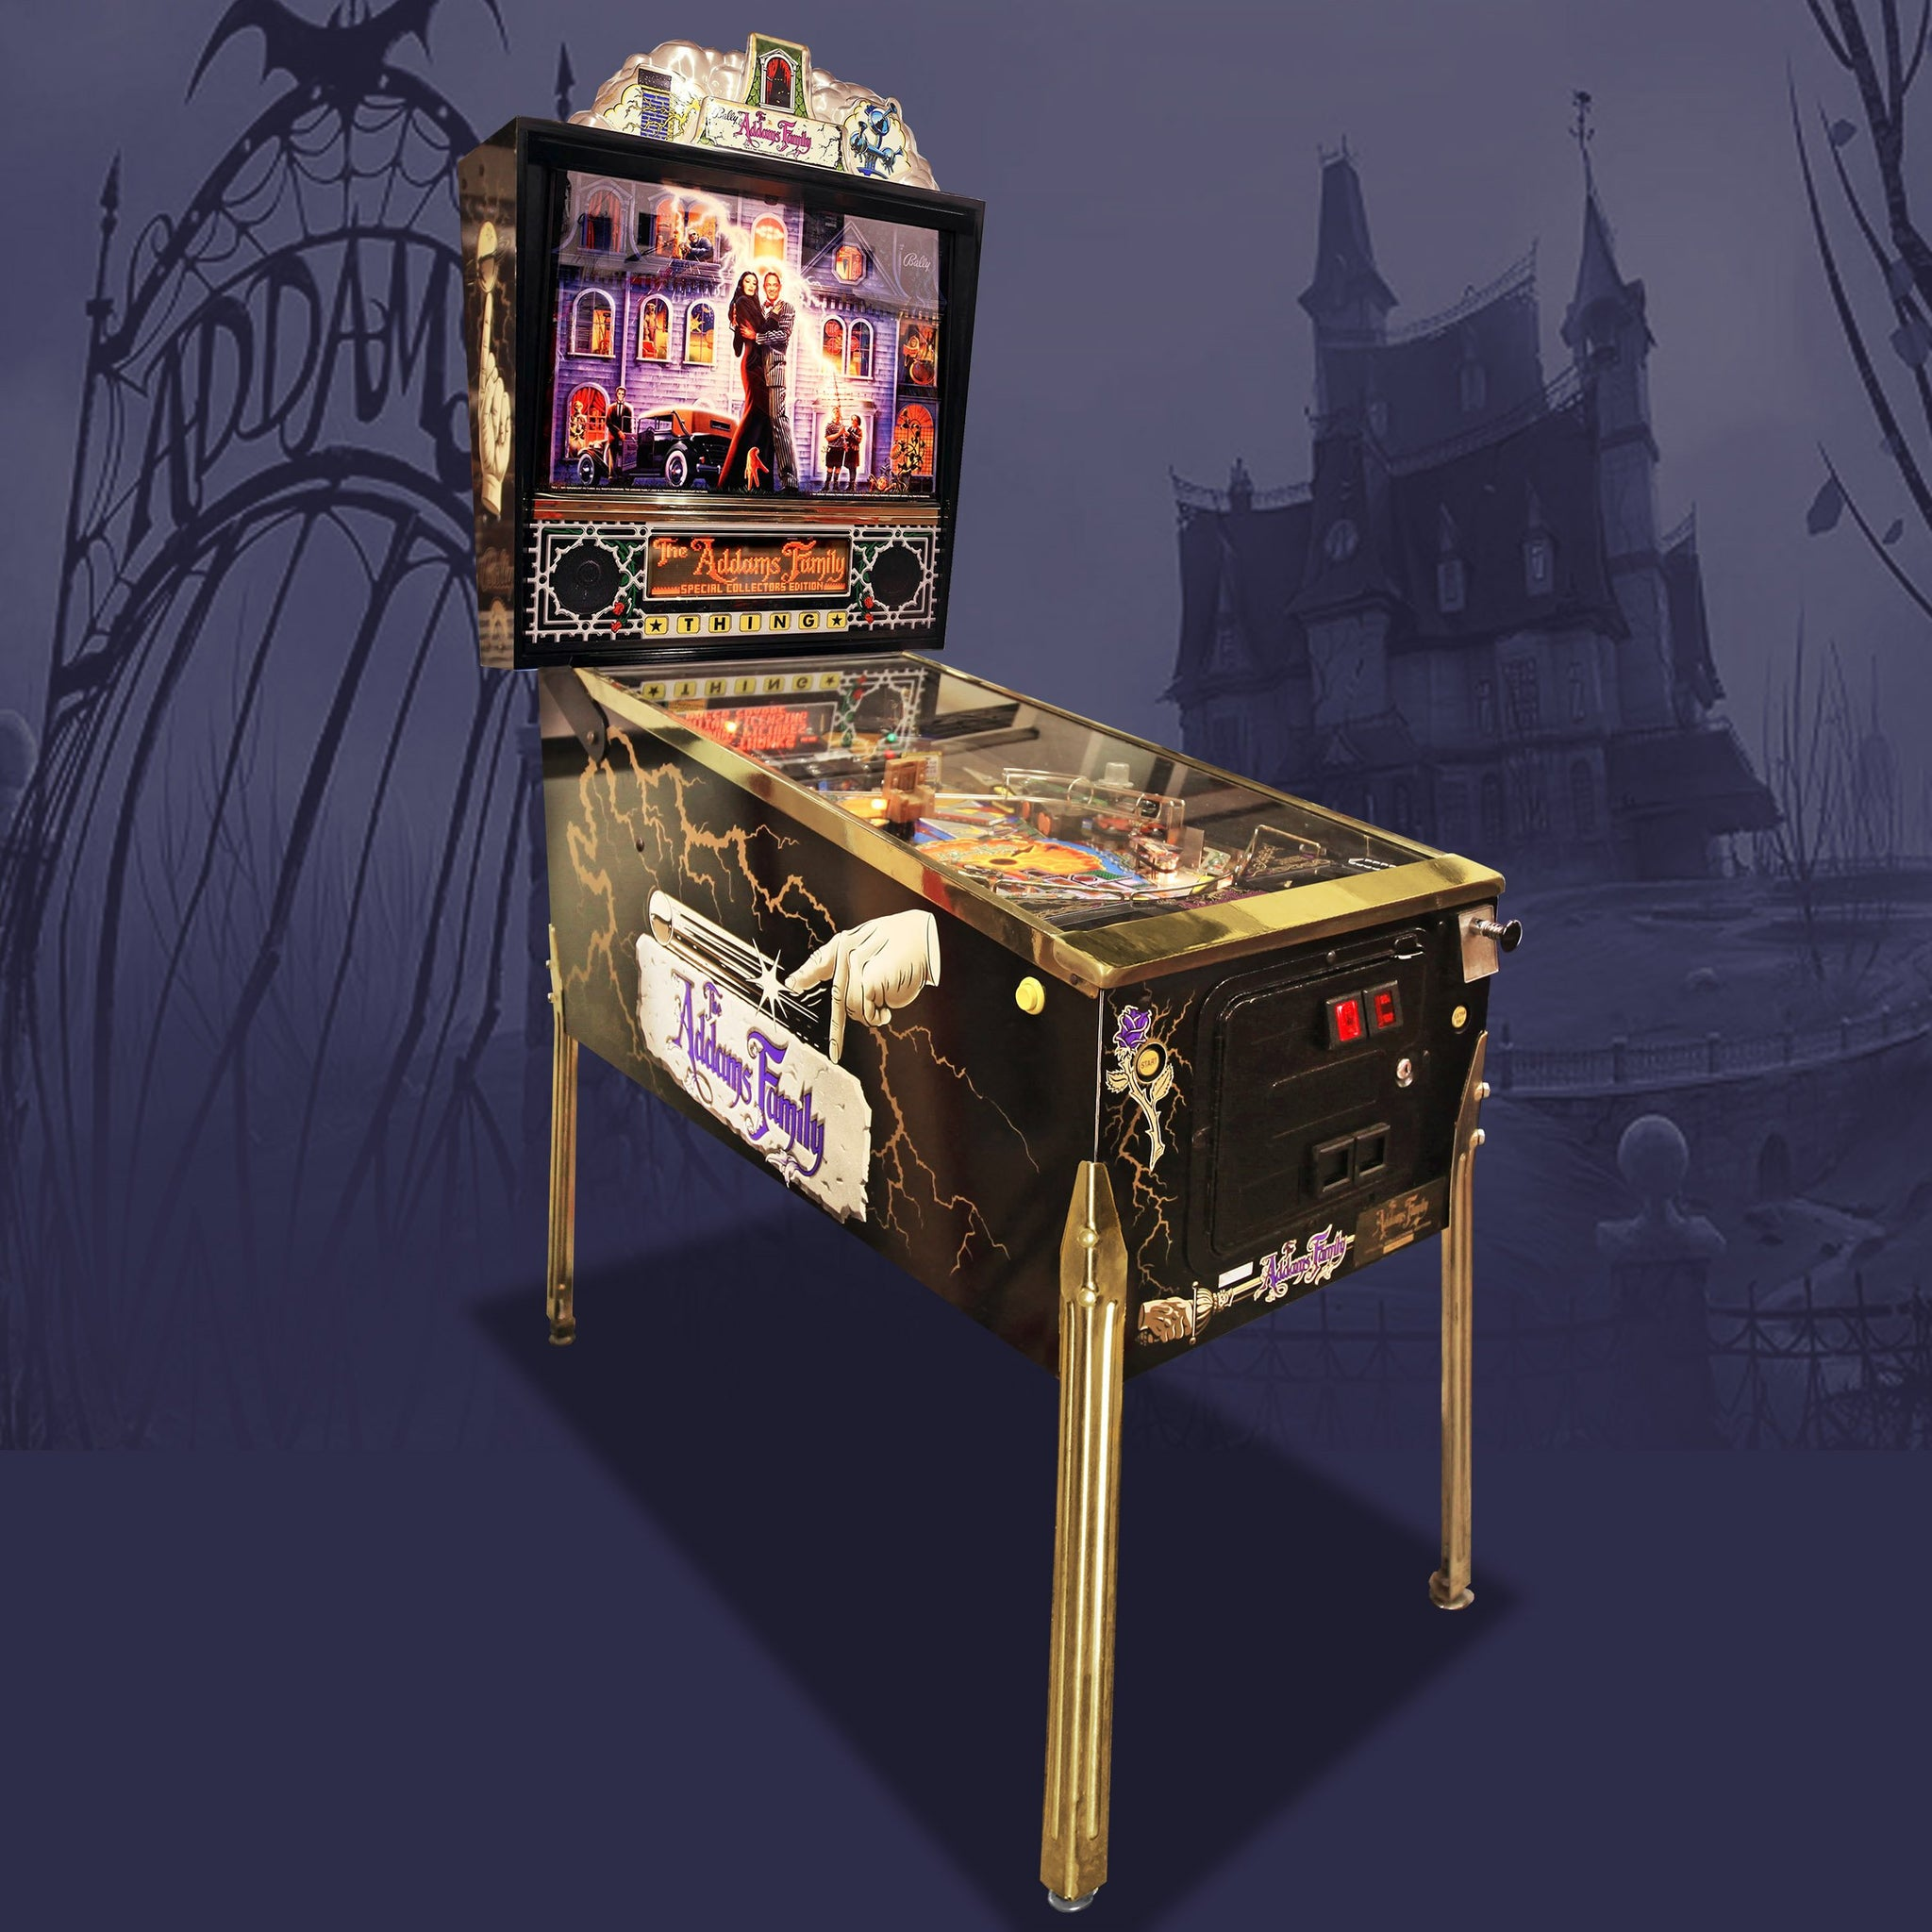 1994 The Addams Family Gold Pinball Machine by Bally